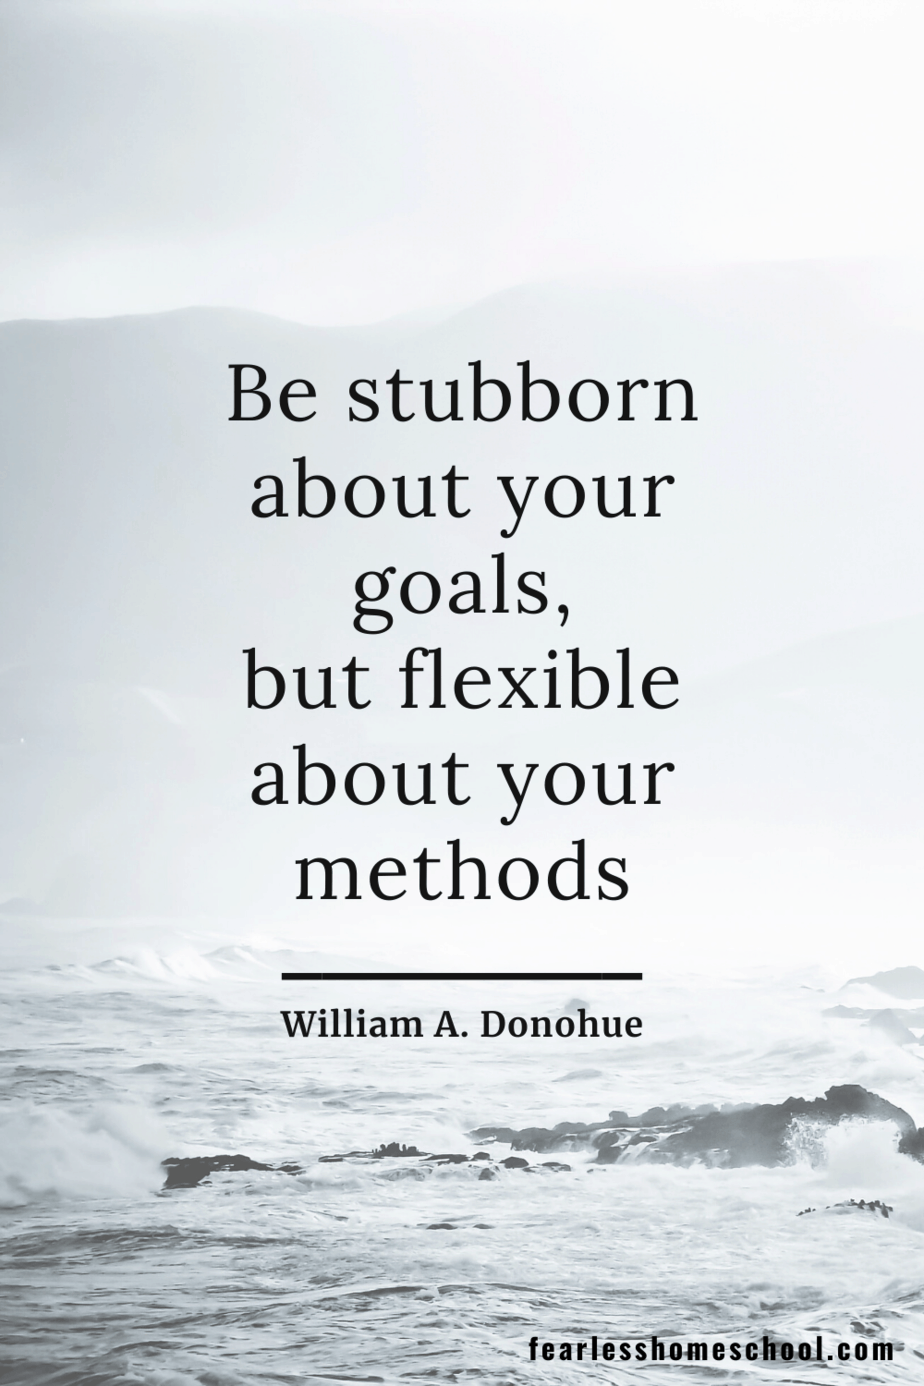 Be stubborn about your goals, but flexible about your methods William A. Donohue homeschooling quote